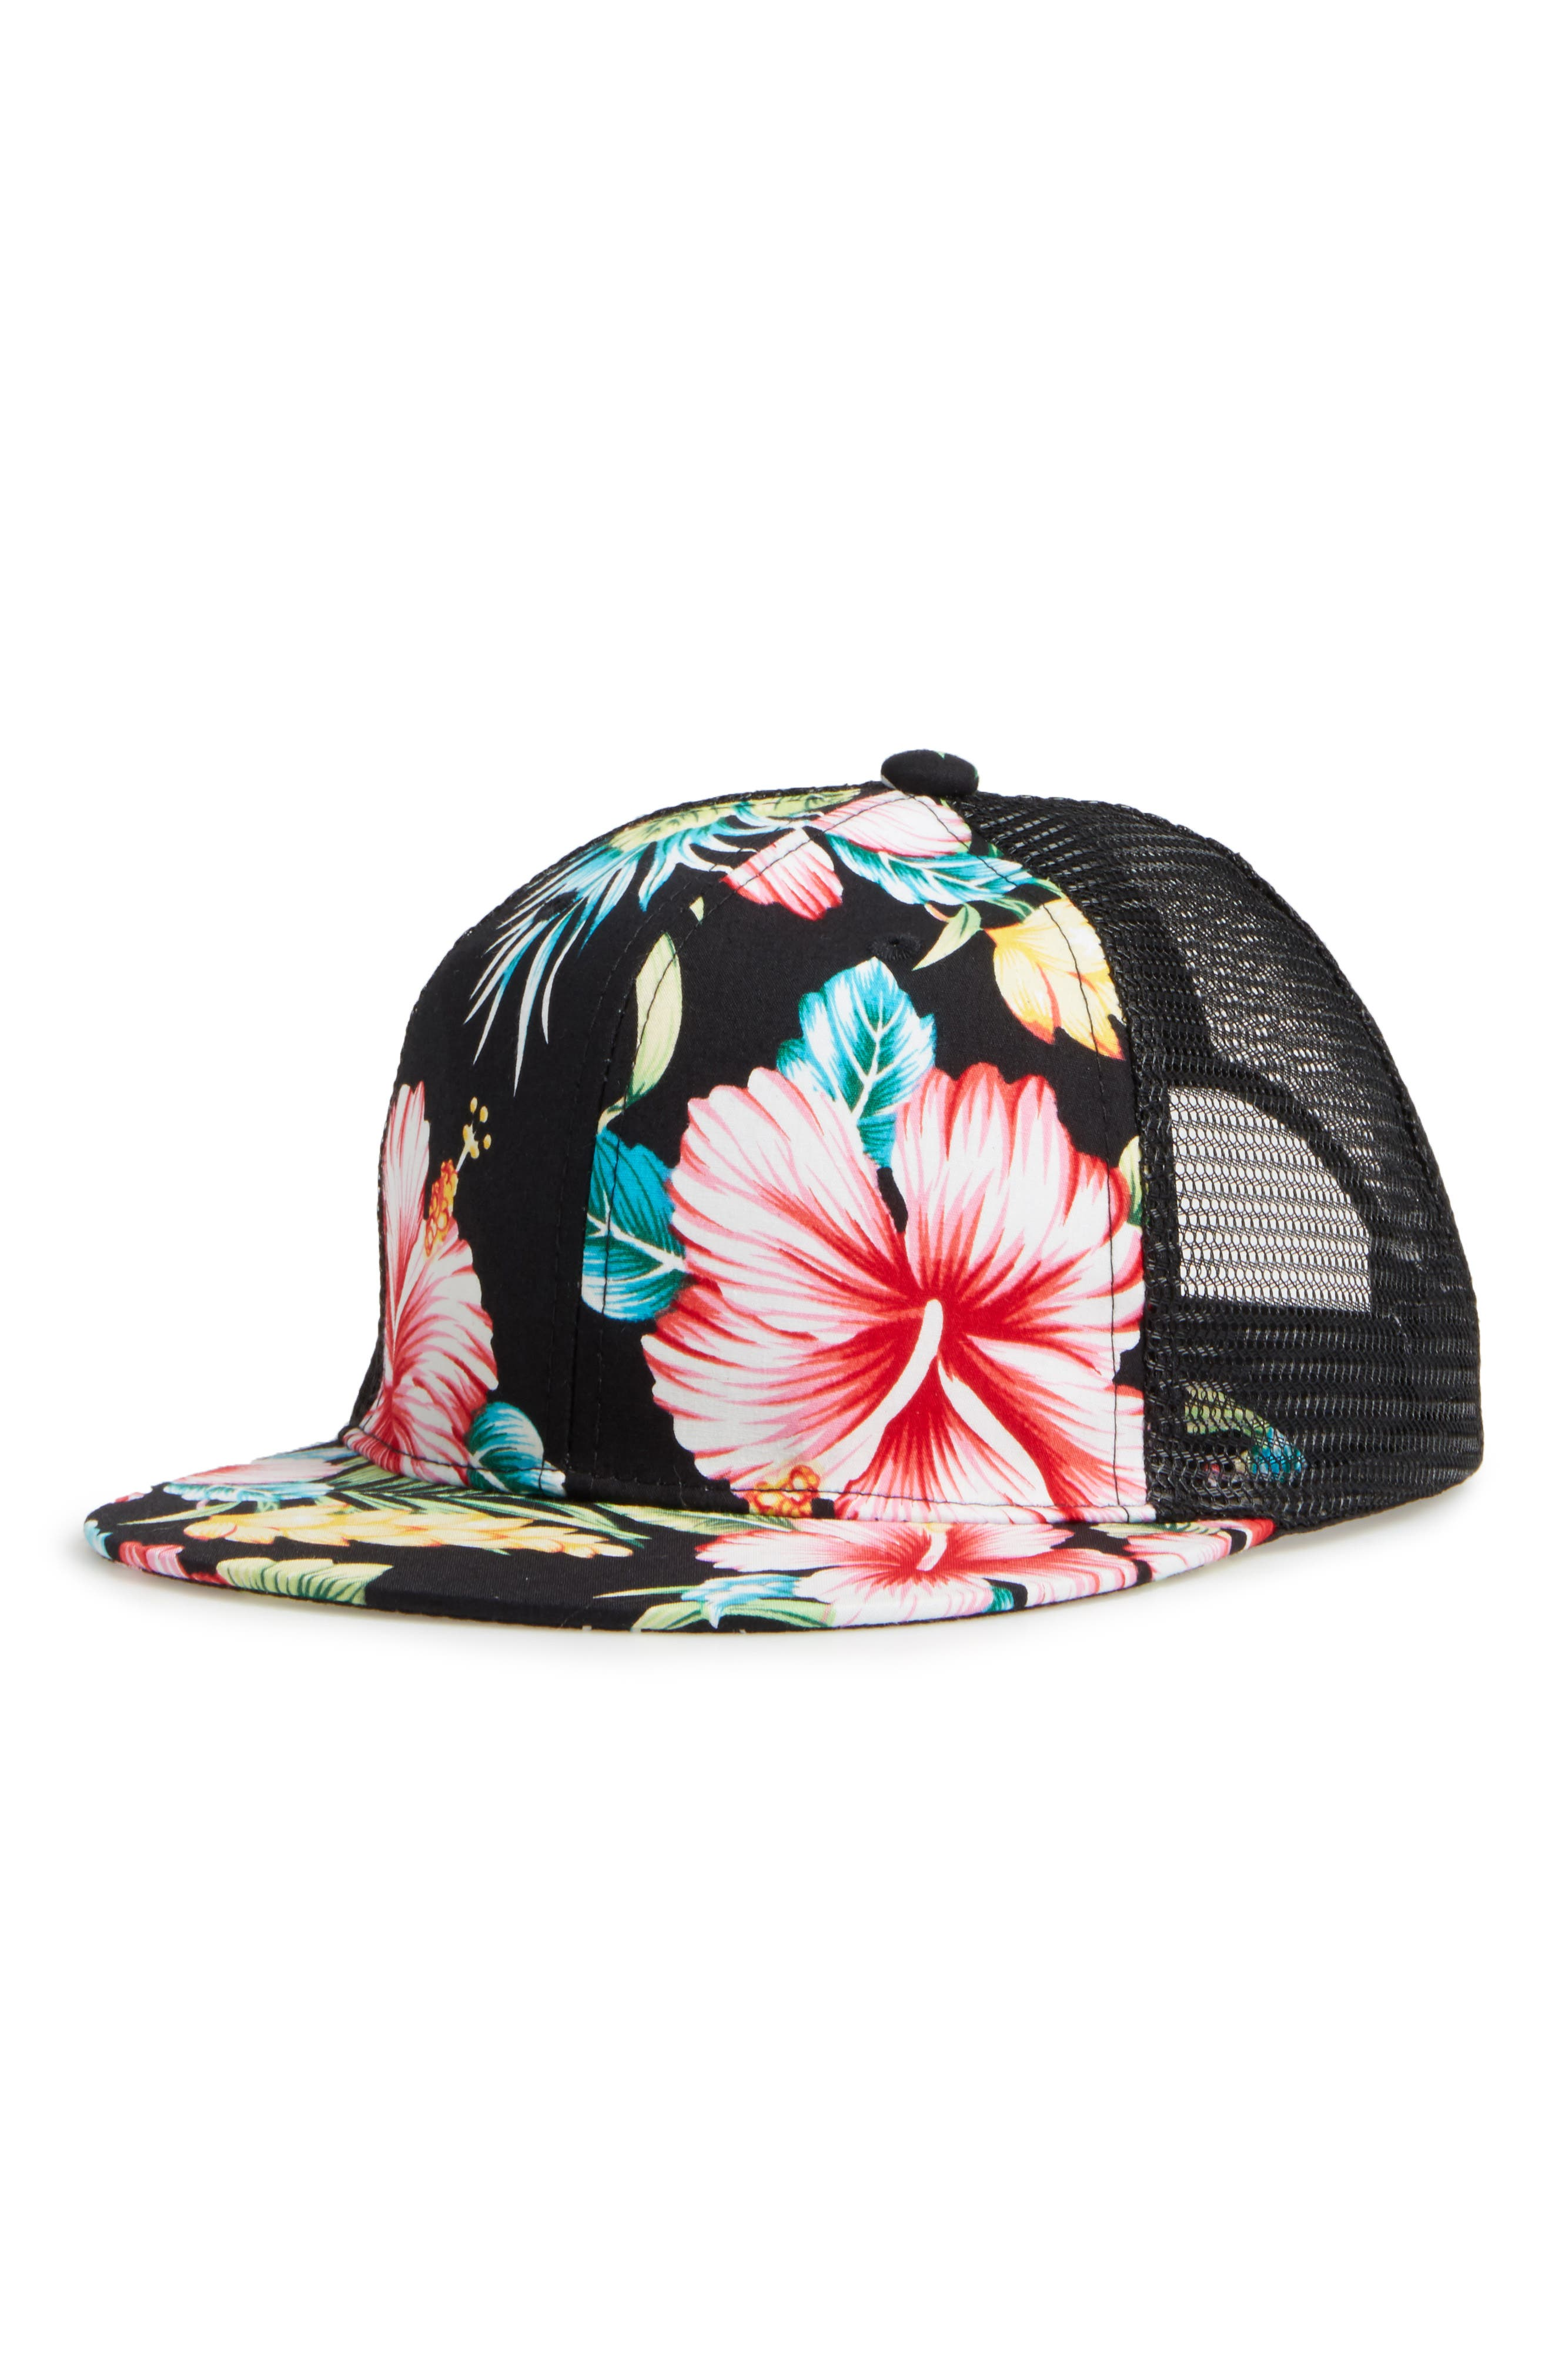 Phase 3 Floral Print Trucker Hat